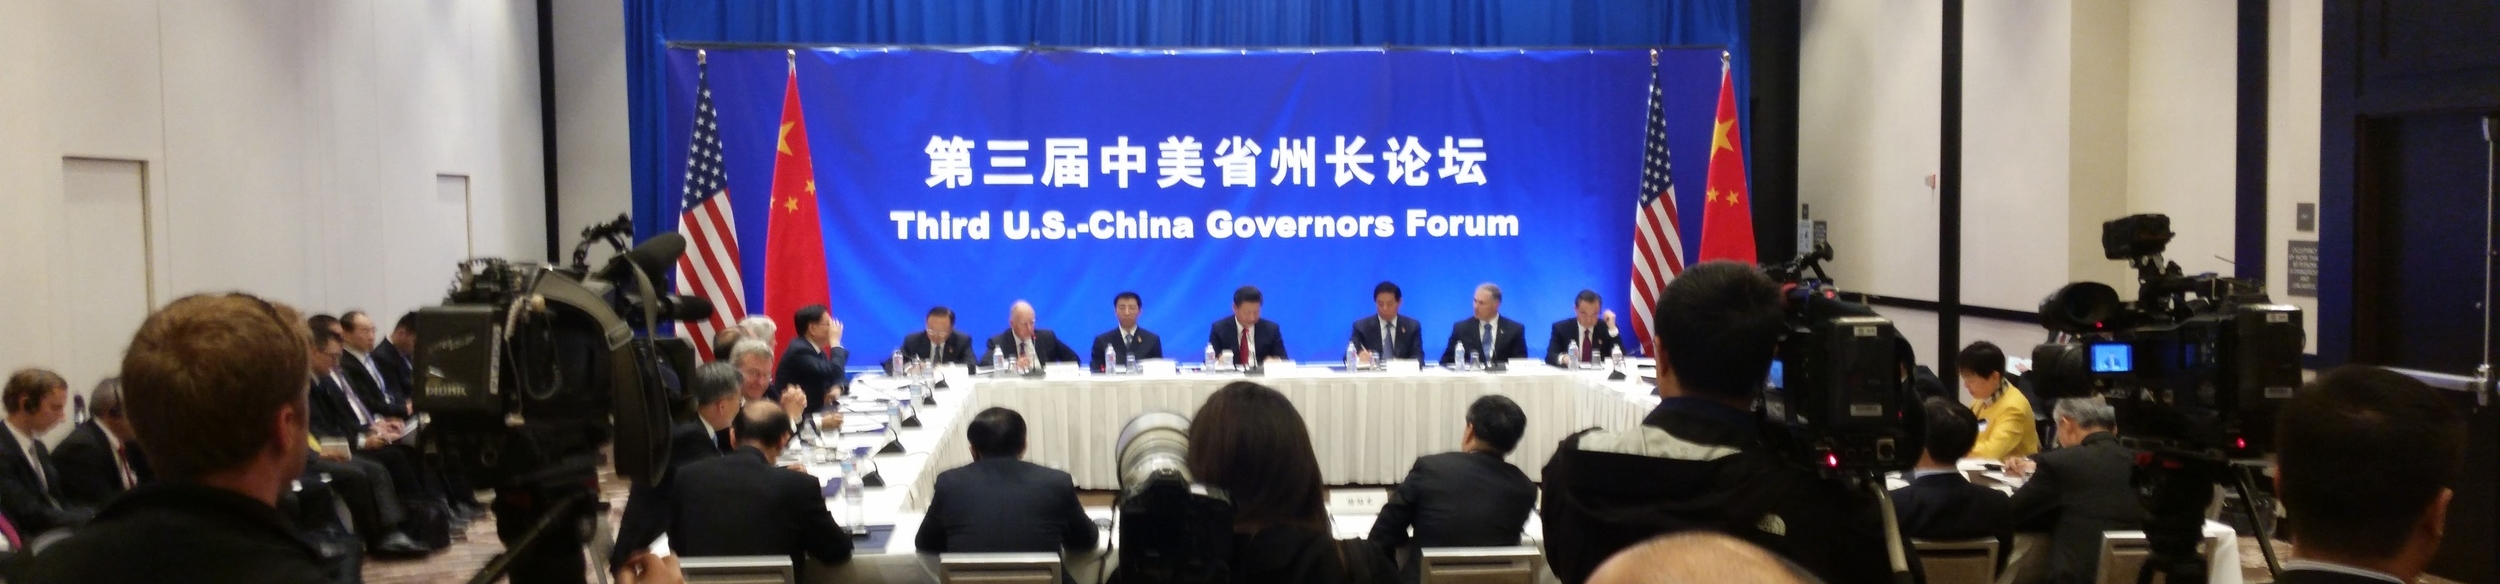 China's President Xi Jinping meeting with US governors